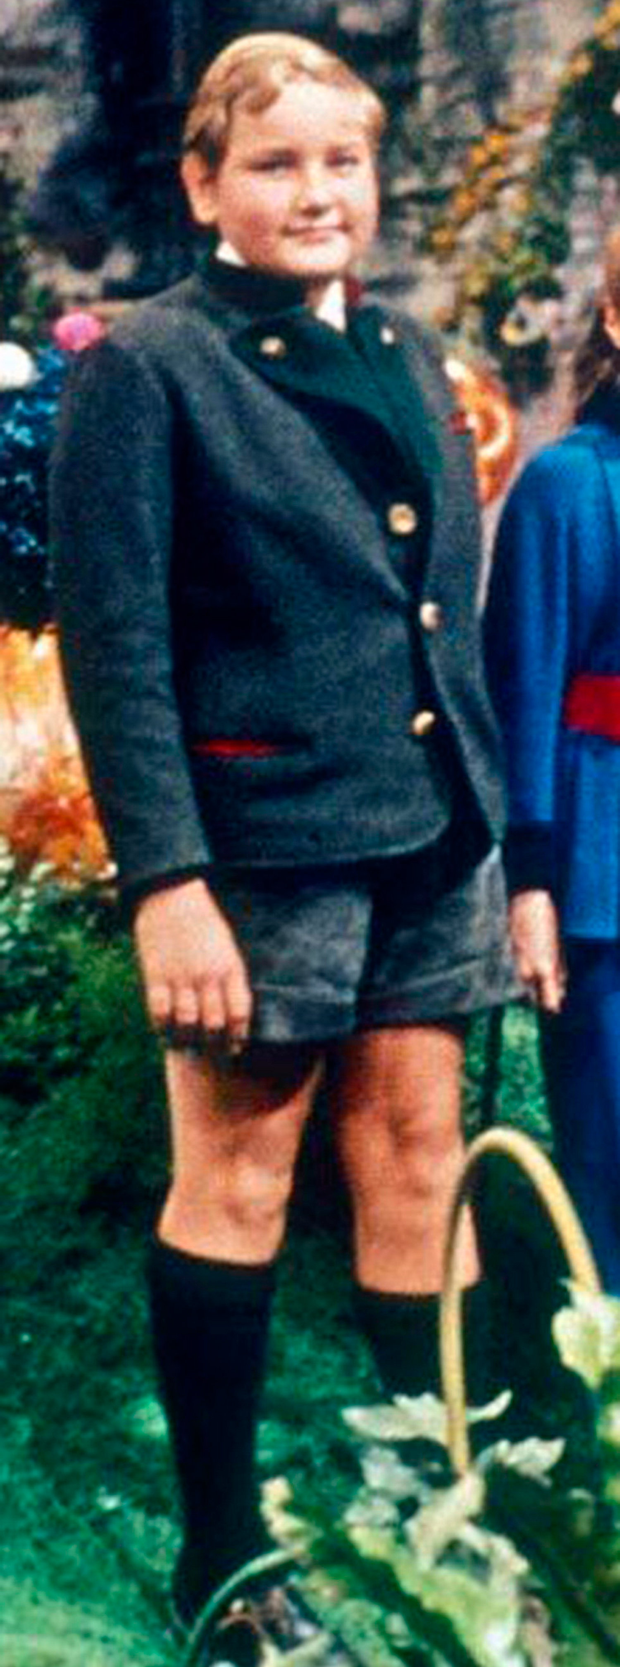 Augustus Gloop in the 1971 movie